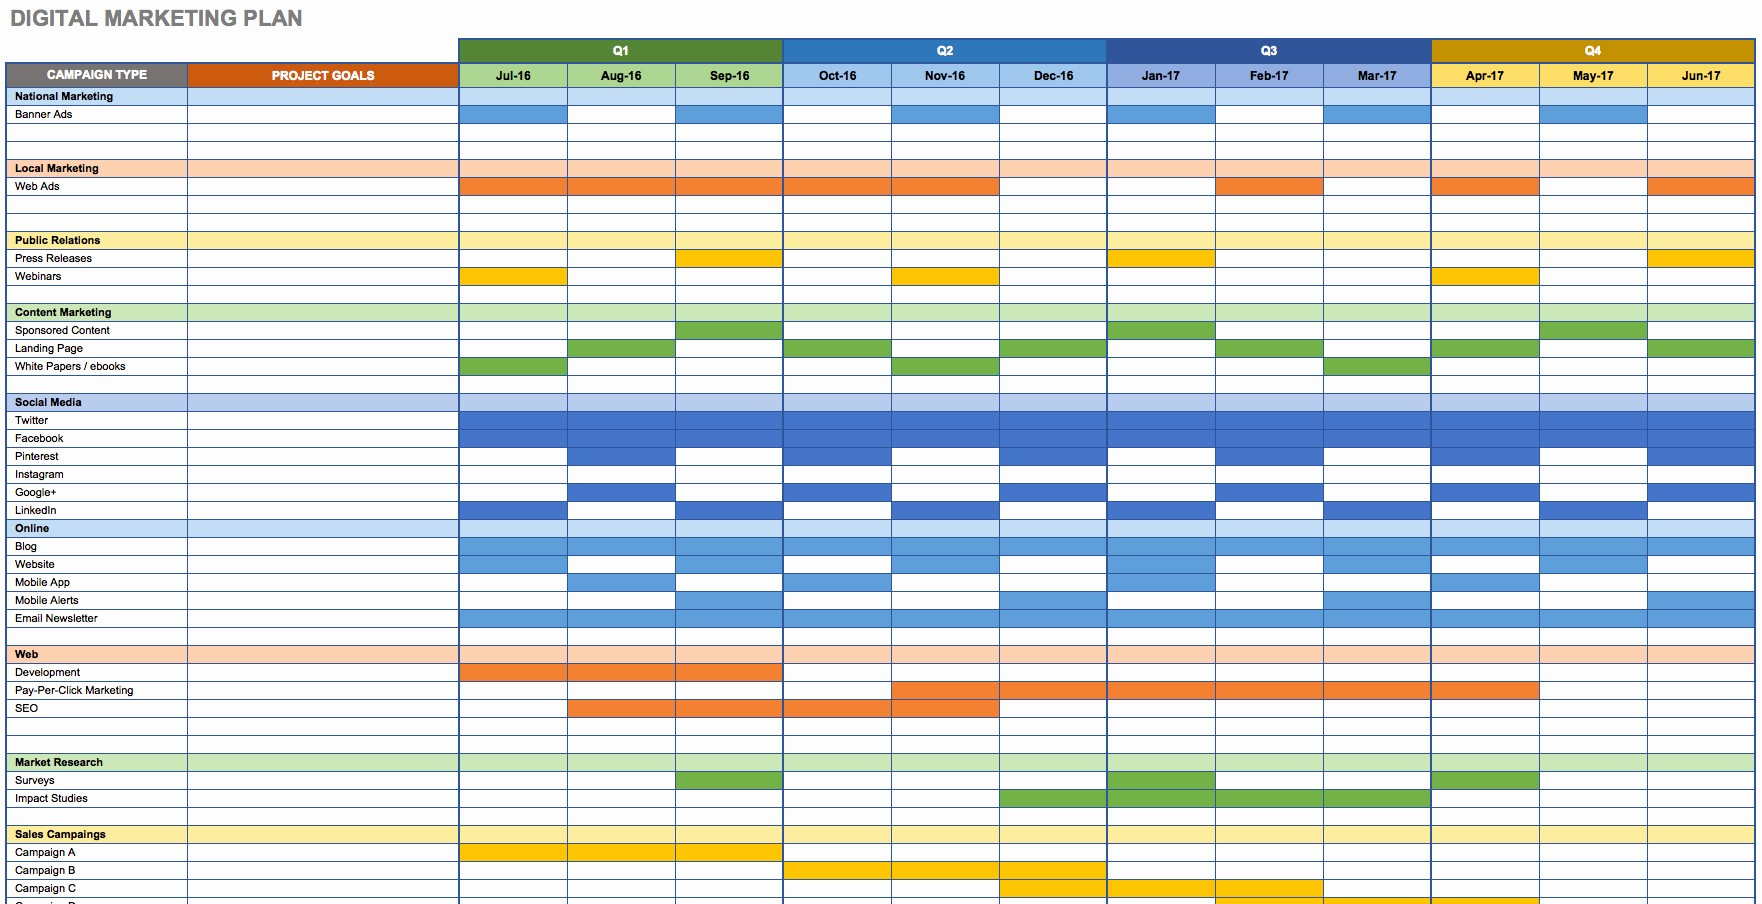 Marketing Action Plan Template Excel Awesome Free Marketing Plan Templates for Excel Smartsheet